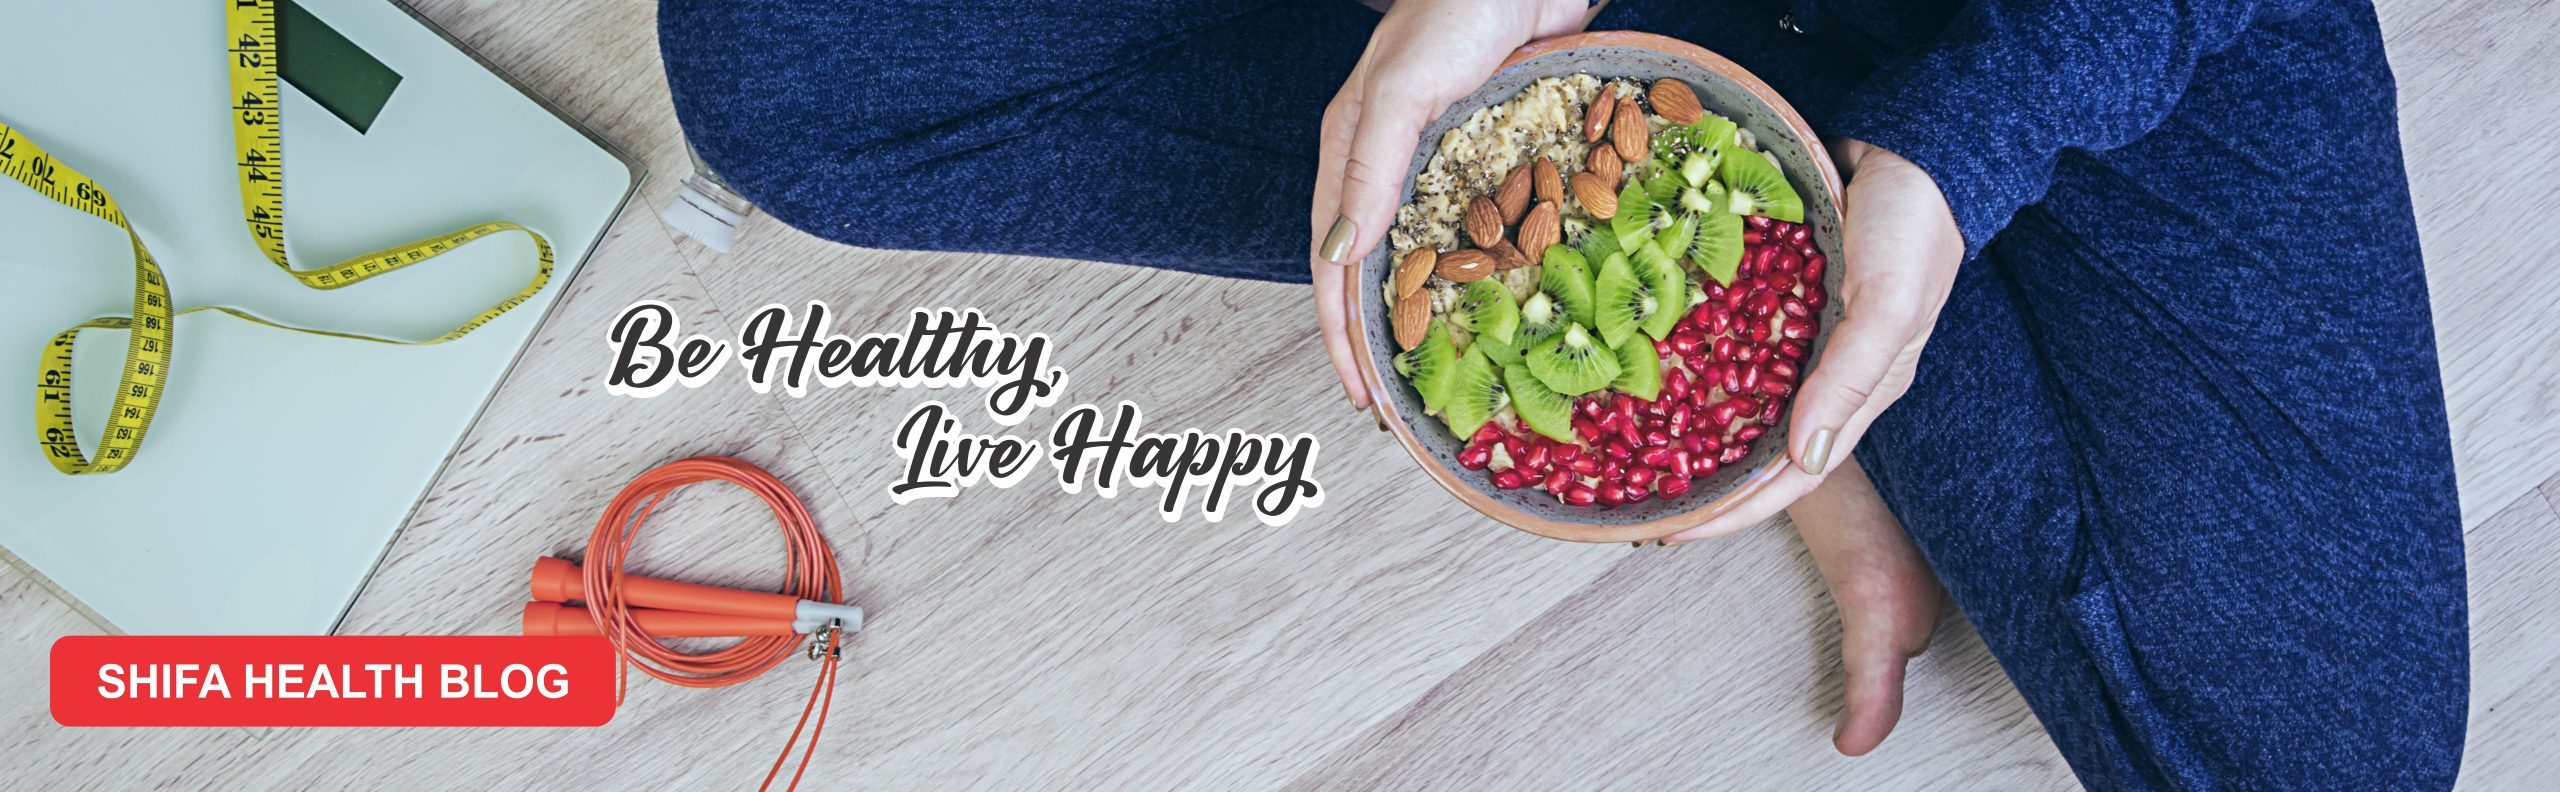 Be Healthy, Live Happy